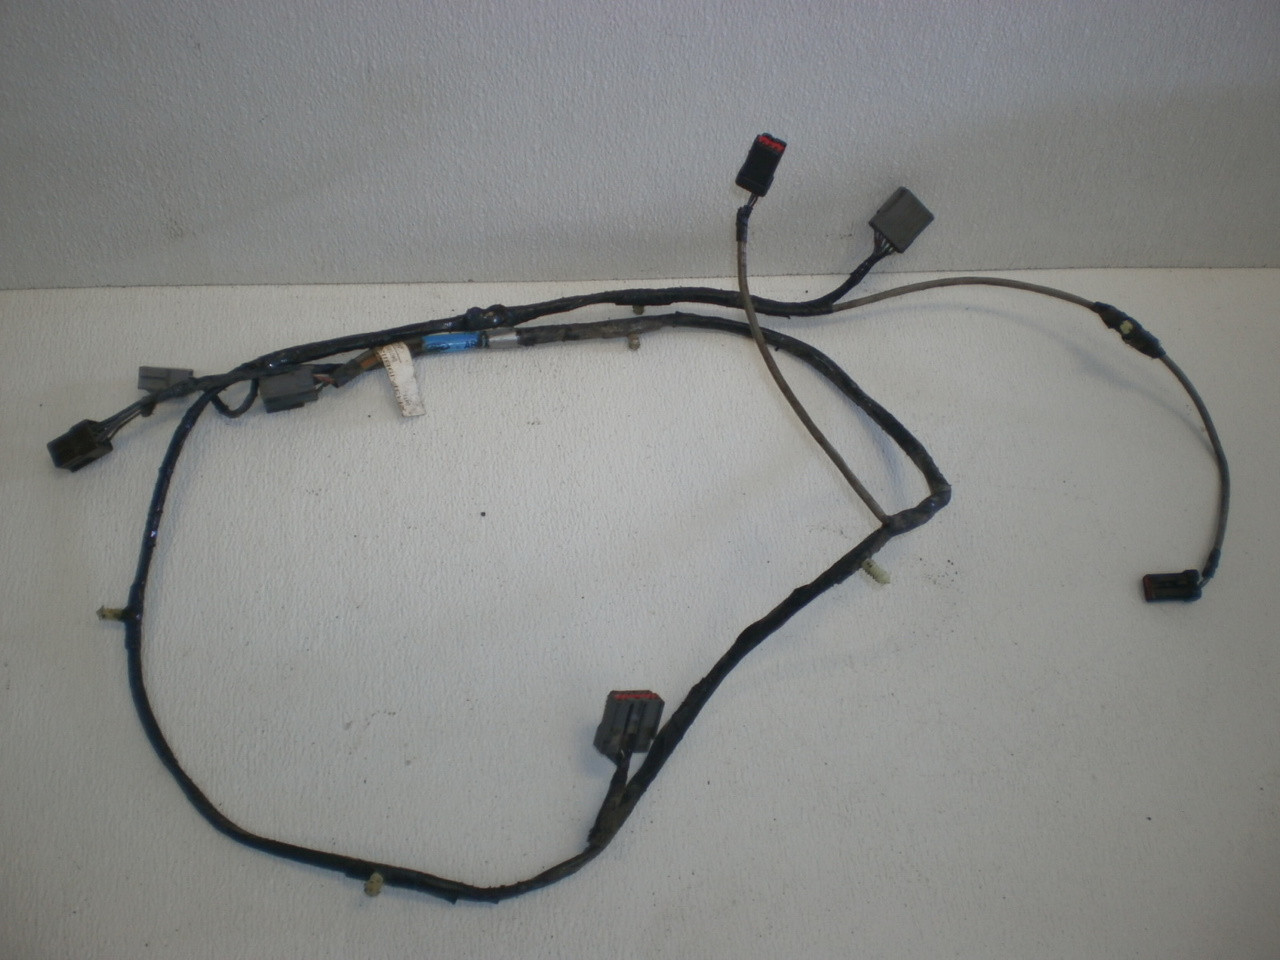 1999 2001 ford mustang mach 460 coupe rear amplifier sub speaker box wire harness stereo [ 1280 x 960 Pixel ]